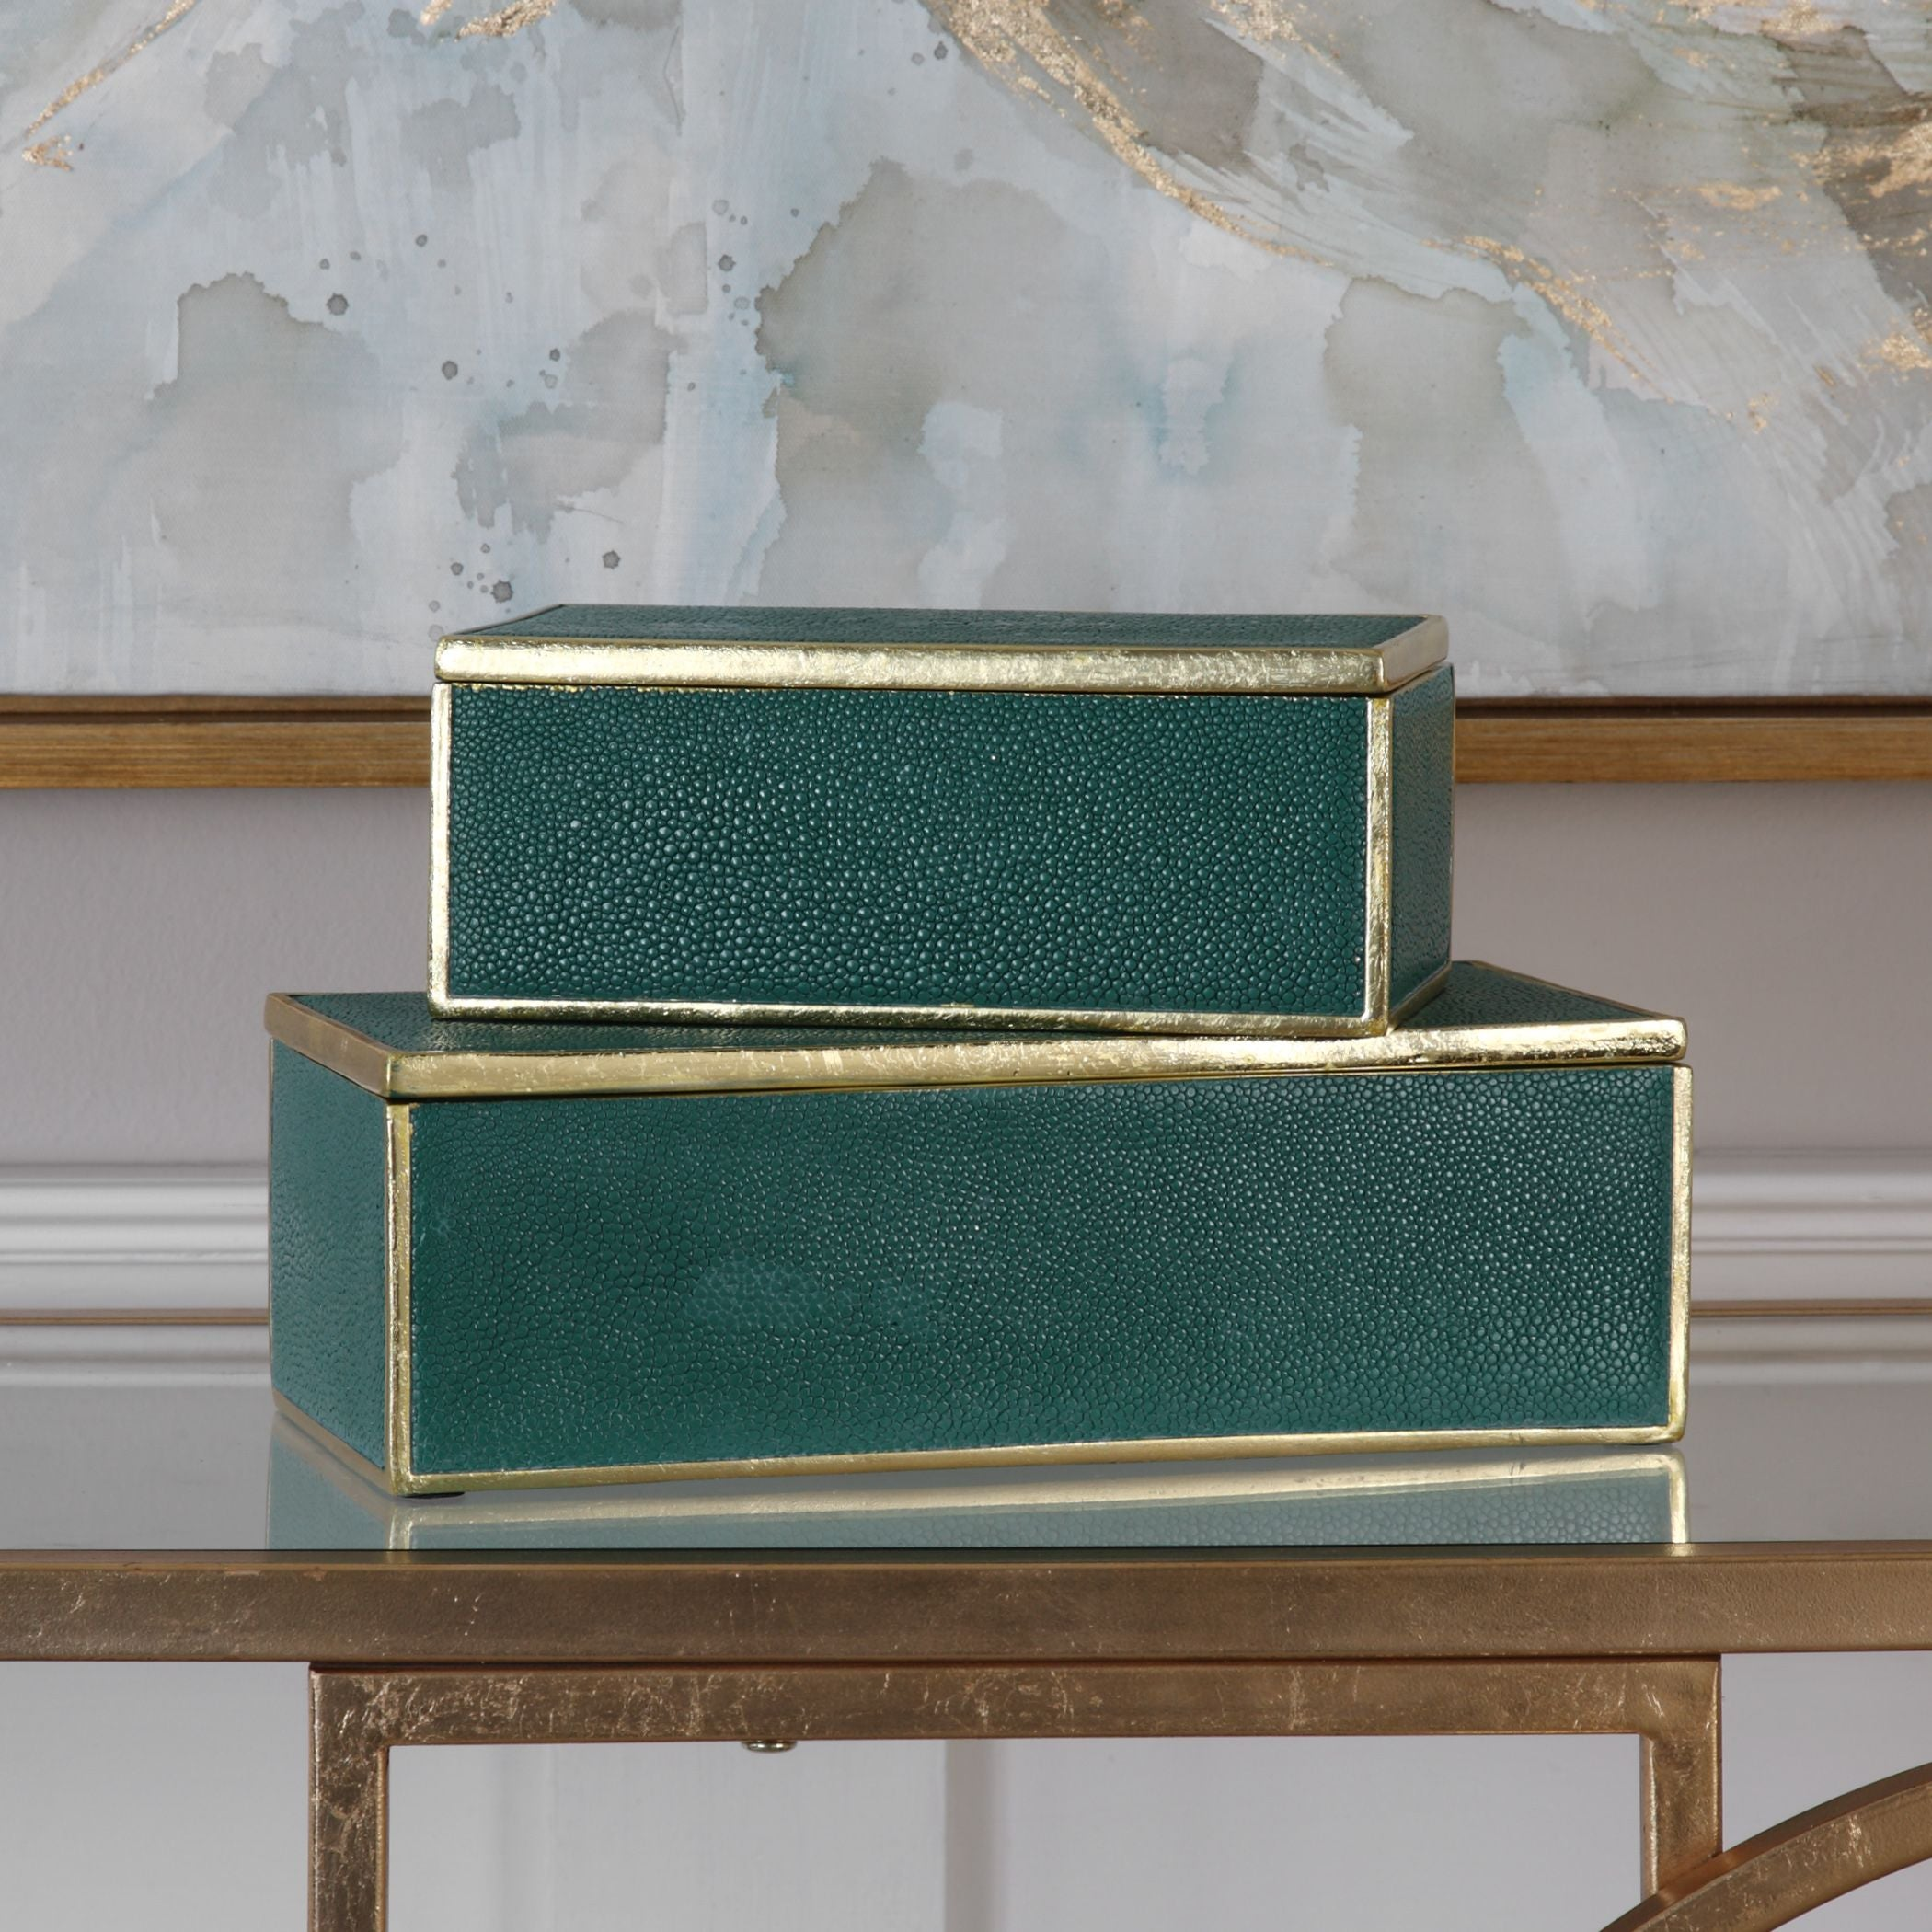 Karis Emerald Green and Gold Leaf Decorative Boxes, 2-Piece